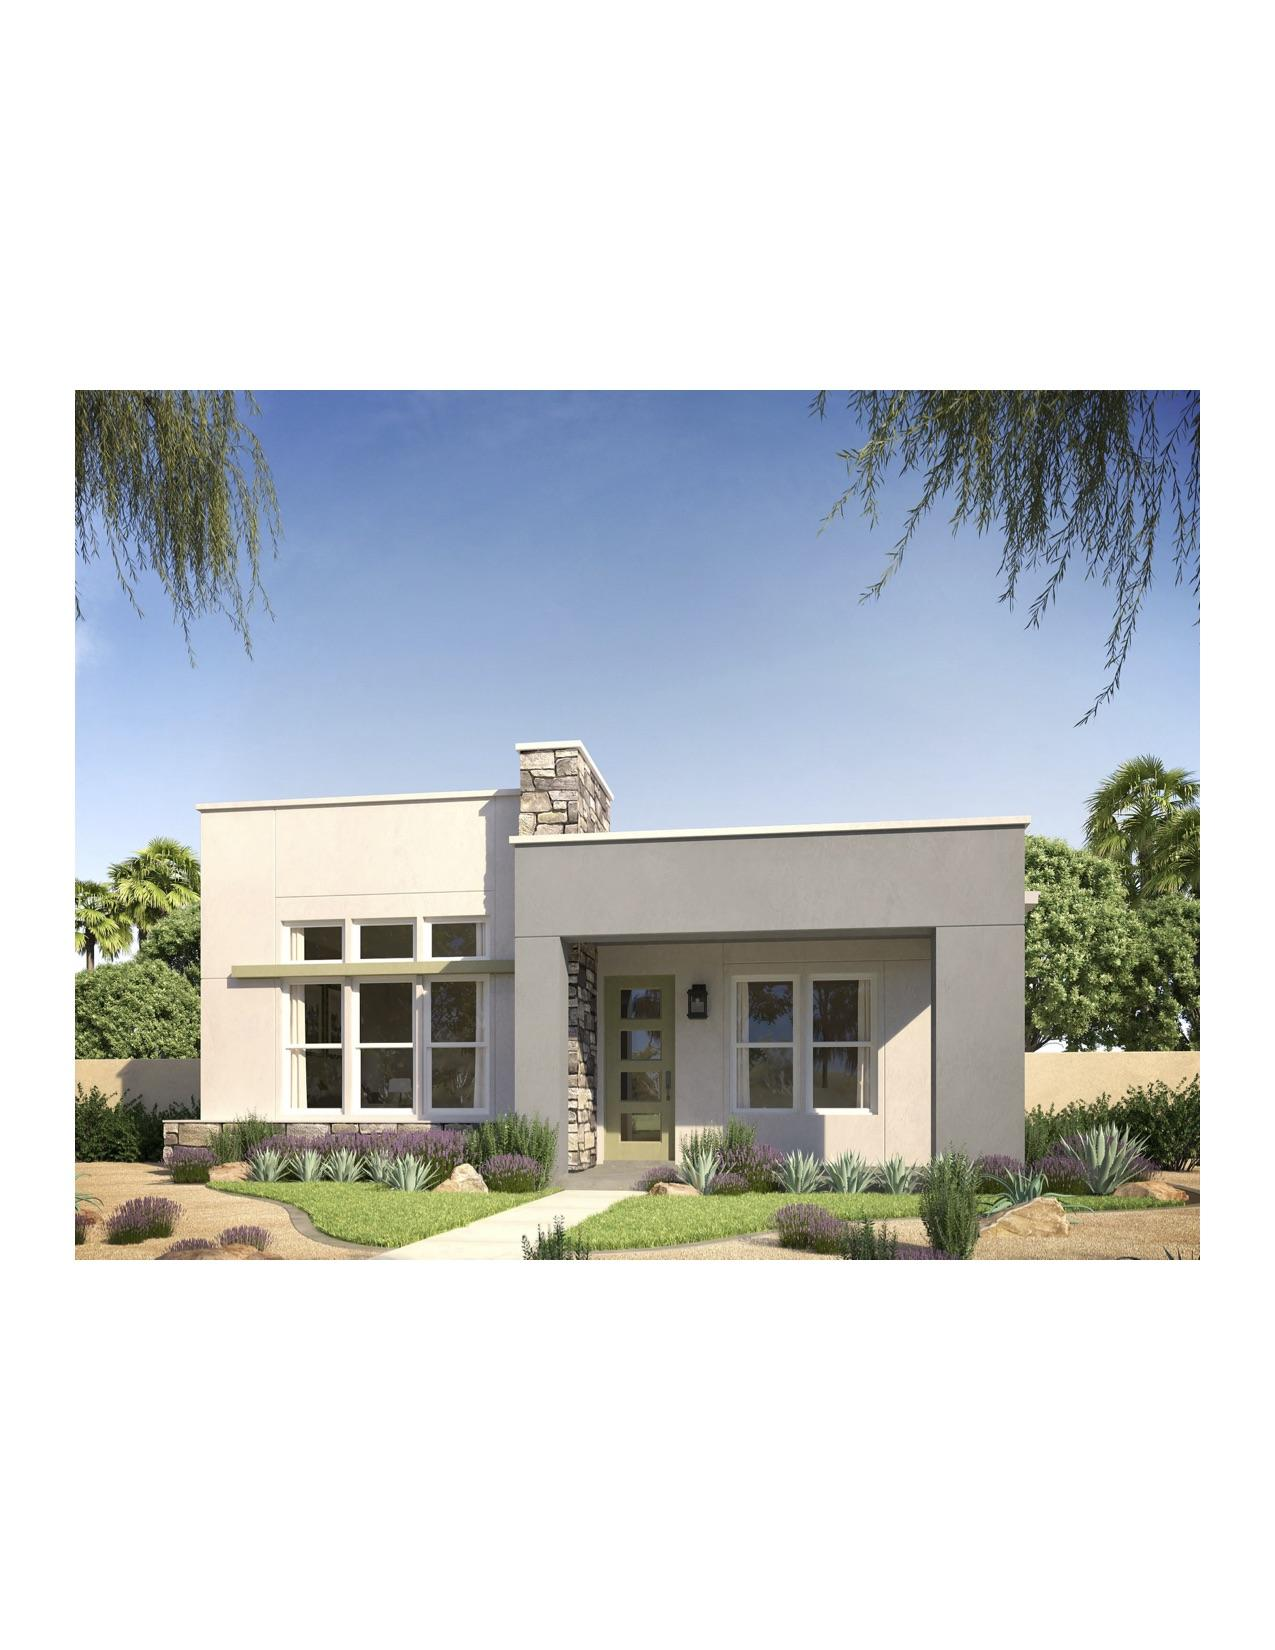 #62 Single Family- Palm, St George in Washington County, UT 84790 Home for Sale